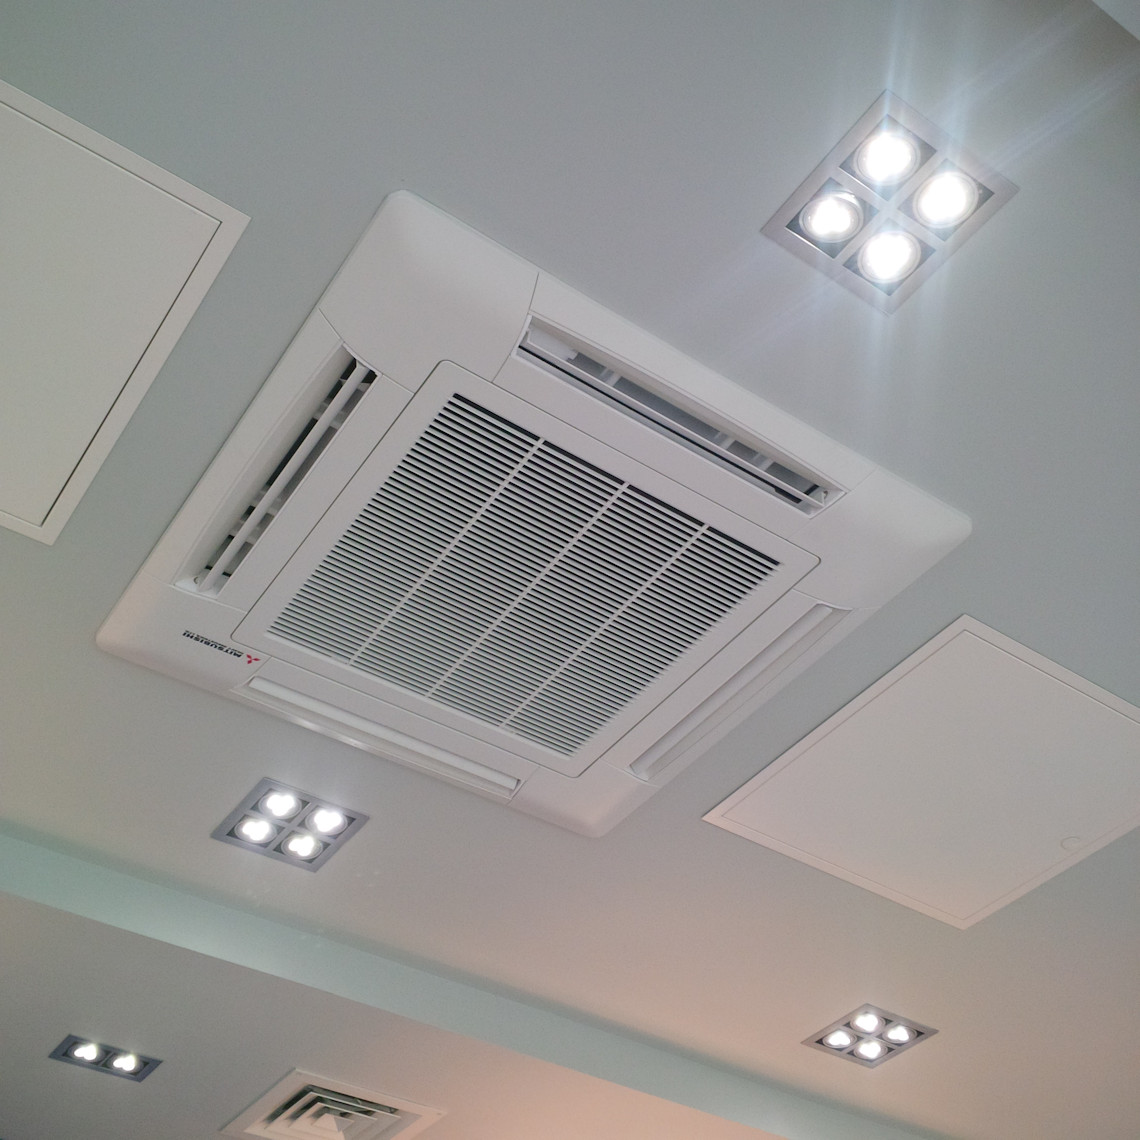 Mitsubishi Electric Ceiling Air Conditioning Units